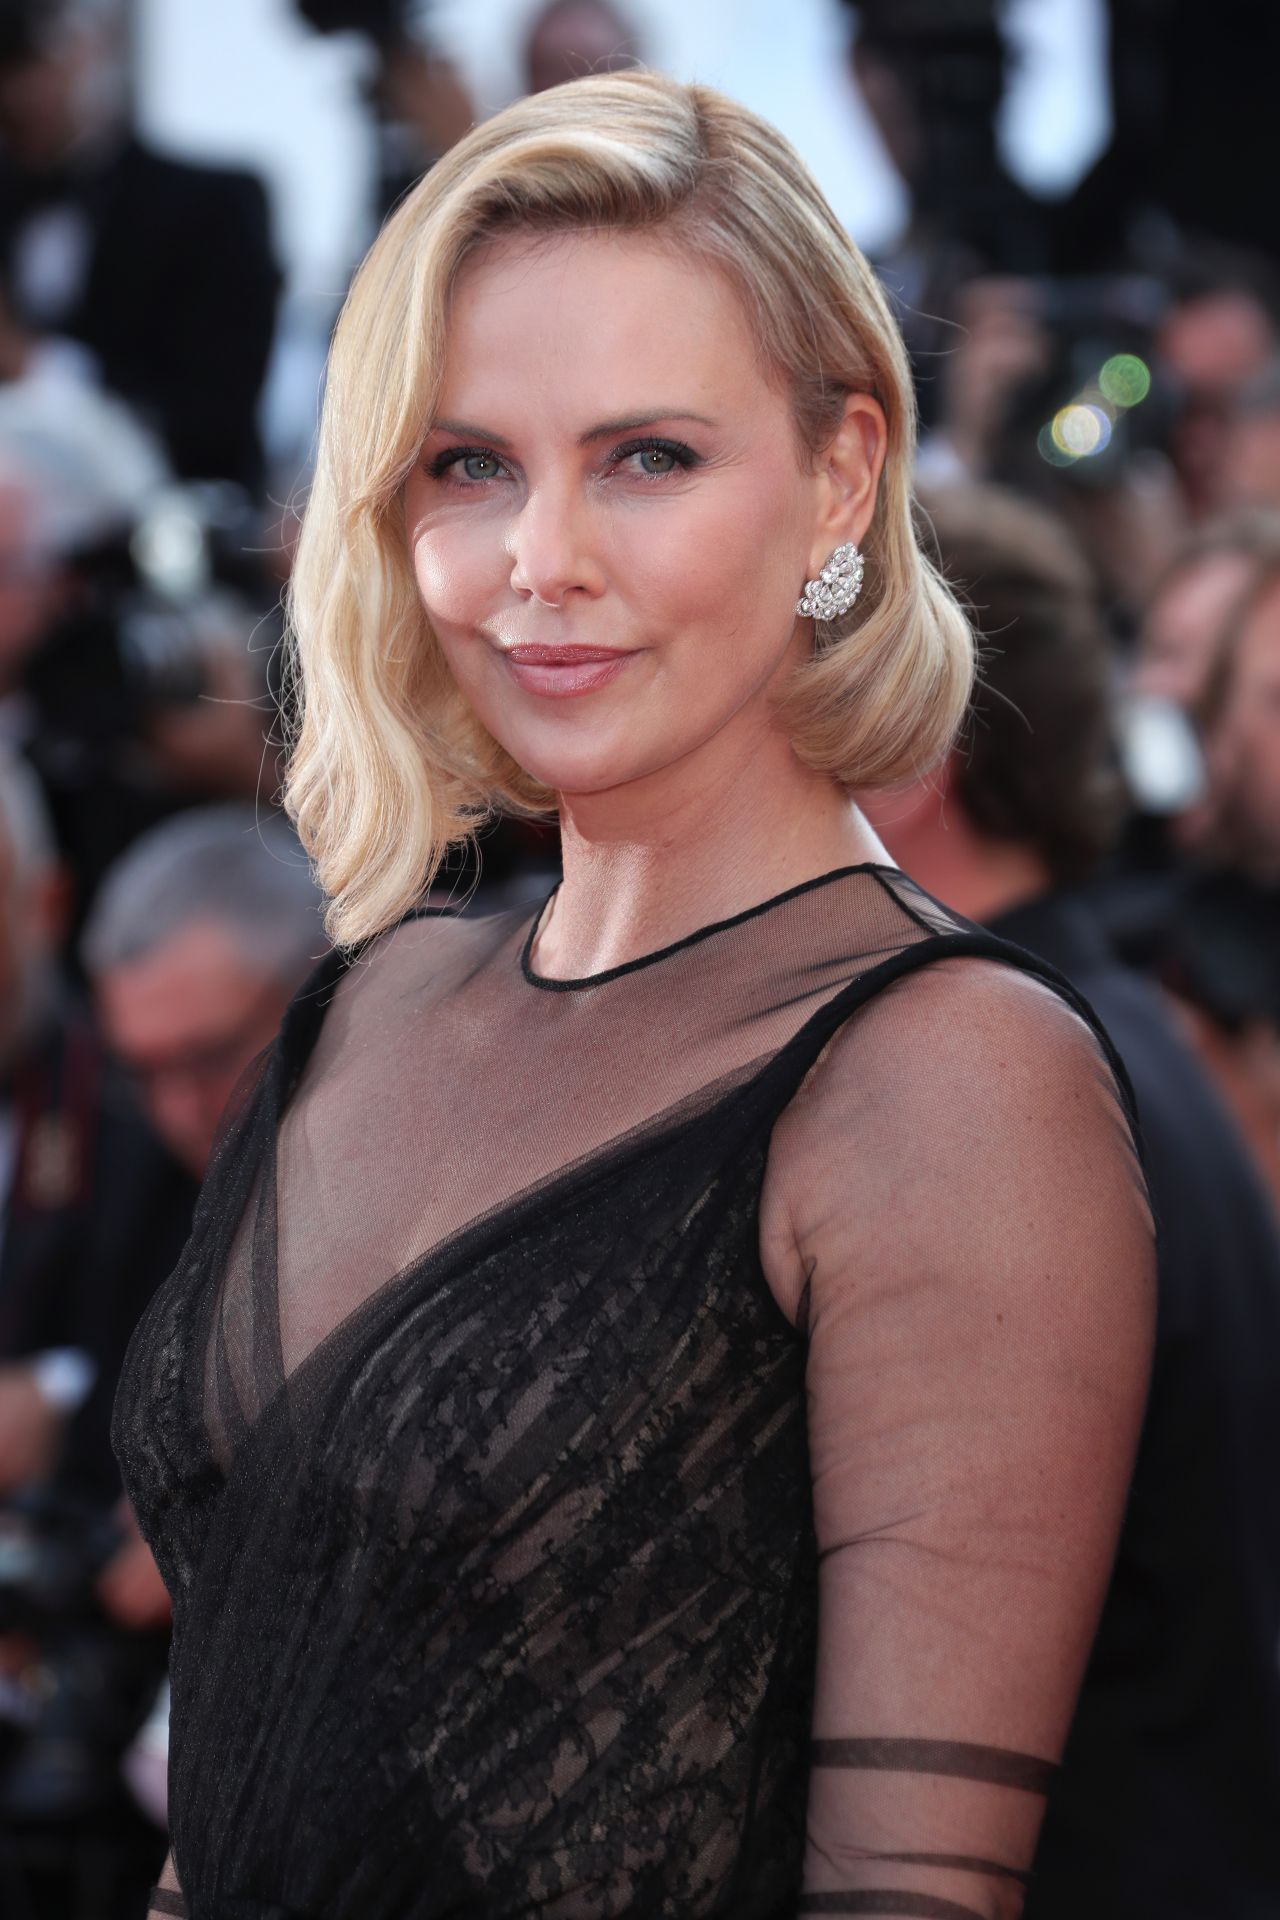 Charlize Theron Style Clothes Outfits And Fashion Celebmafia Over the time it has been ranked as high as 17 299 in the world, while most of its traffic comes from india, where it reached as high as 9 353 position. charlize theron style clothes outfits